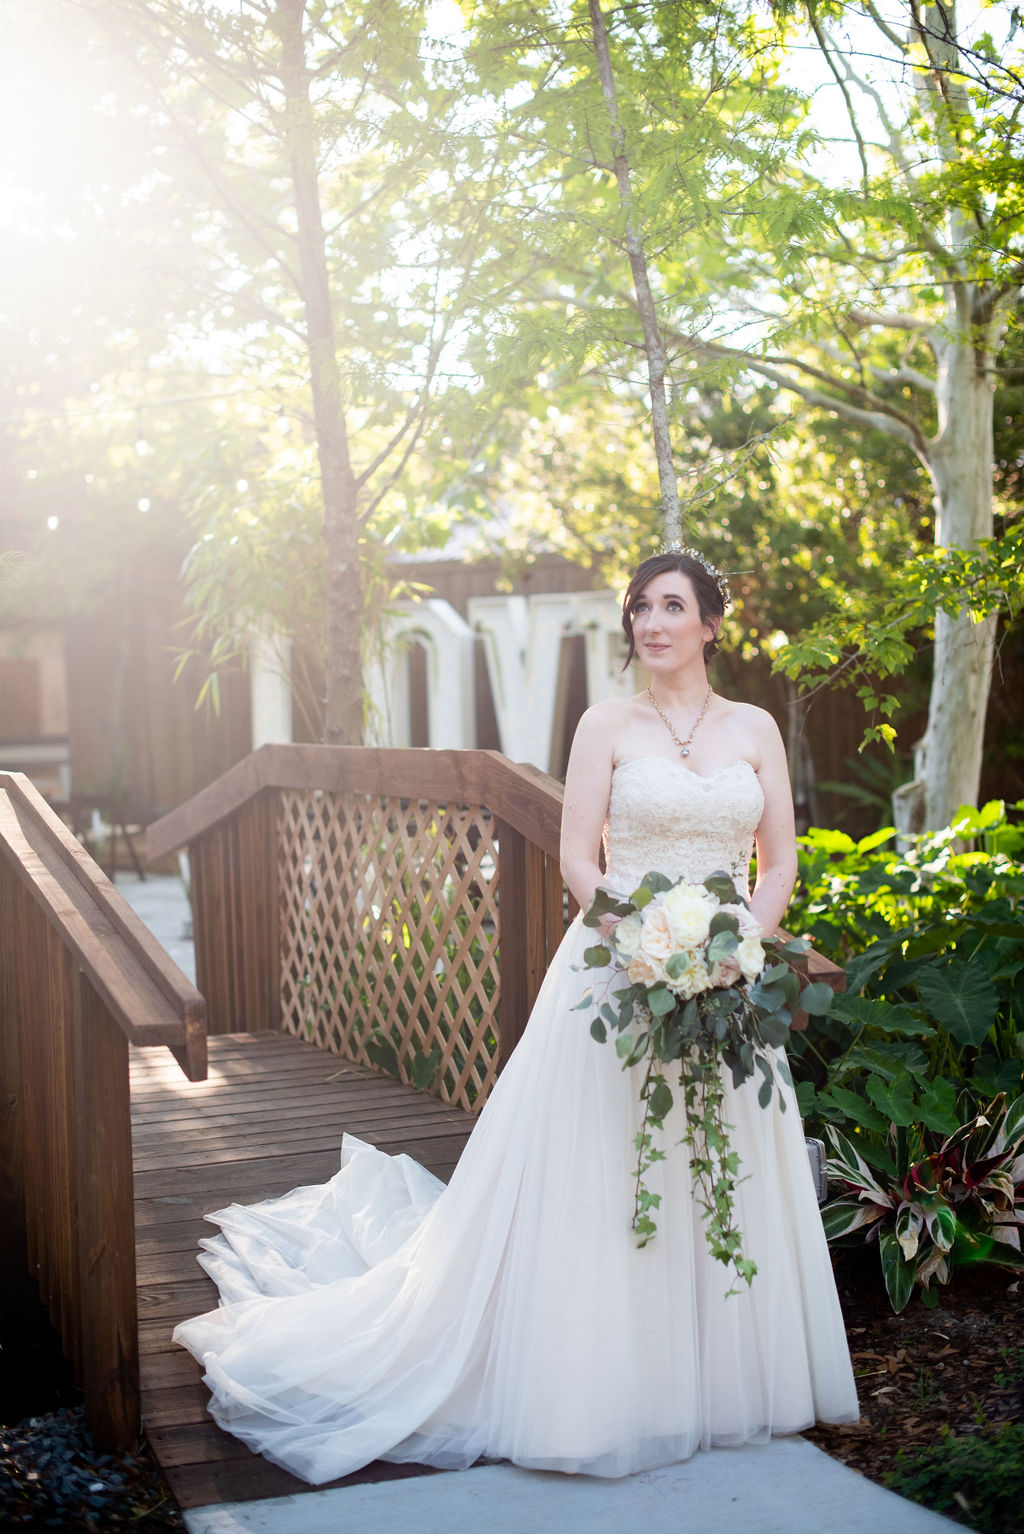 st-augustine-photographer-wedding-house-of-assembly-events-st-augustine-florida-sarah-annay36.jpg